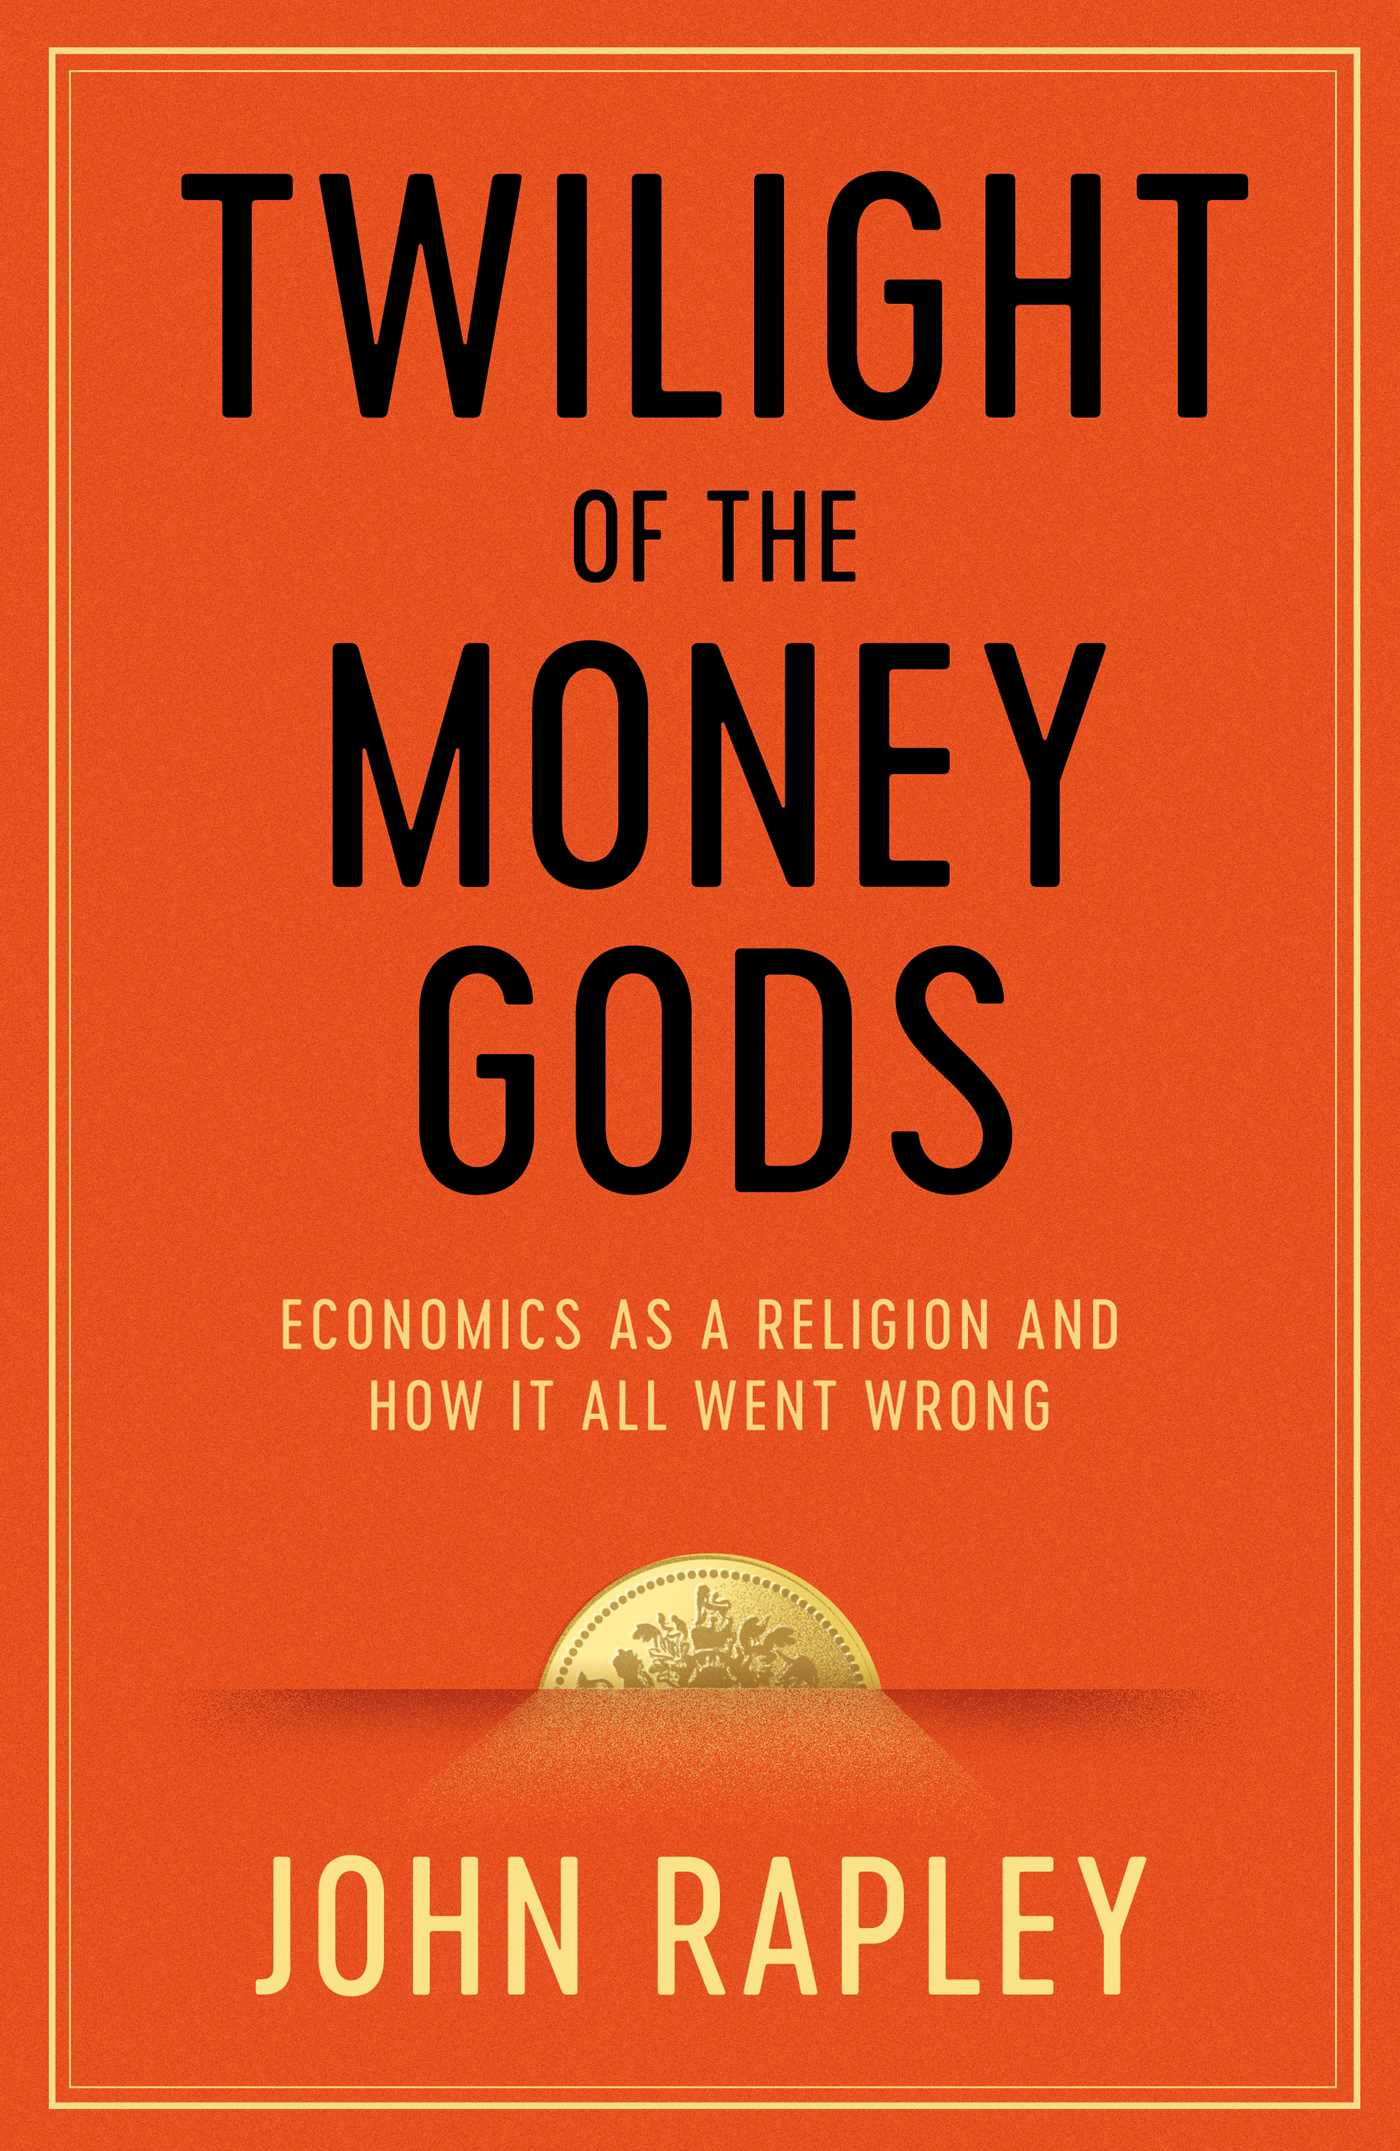 Twilight of the money gods 9781471152771 hr